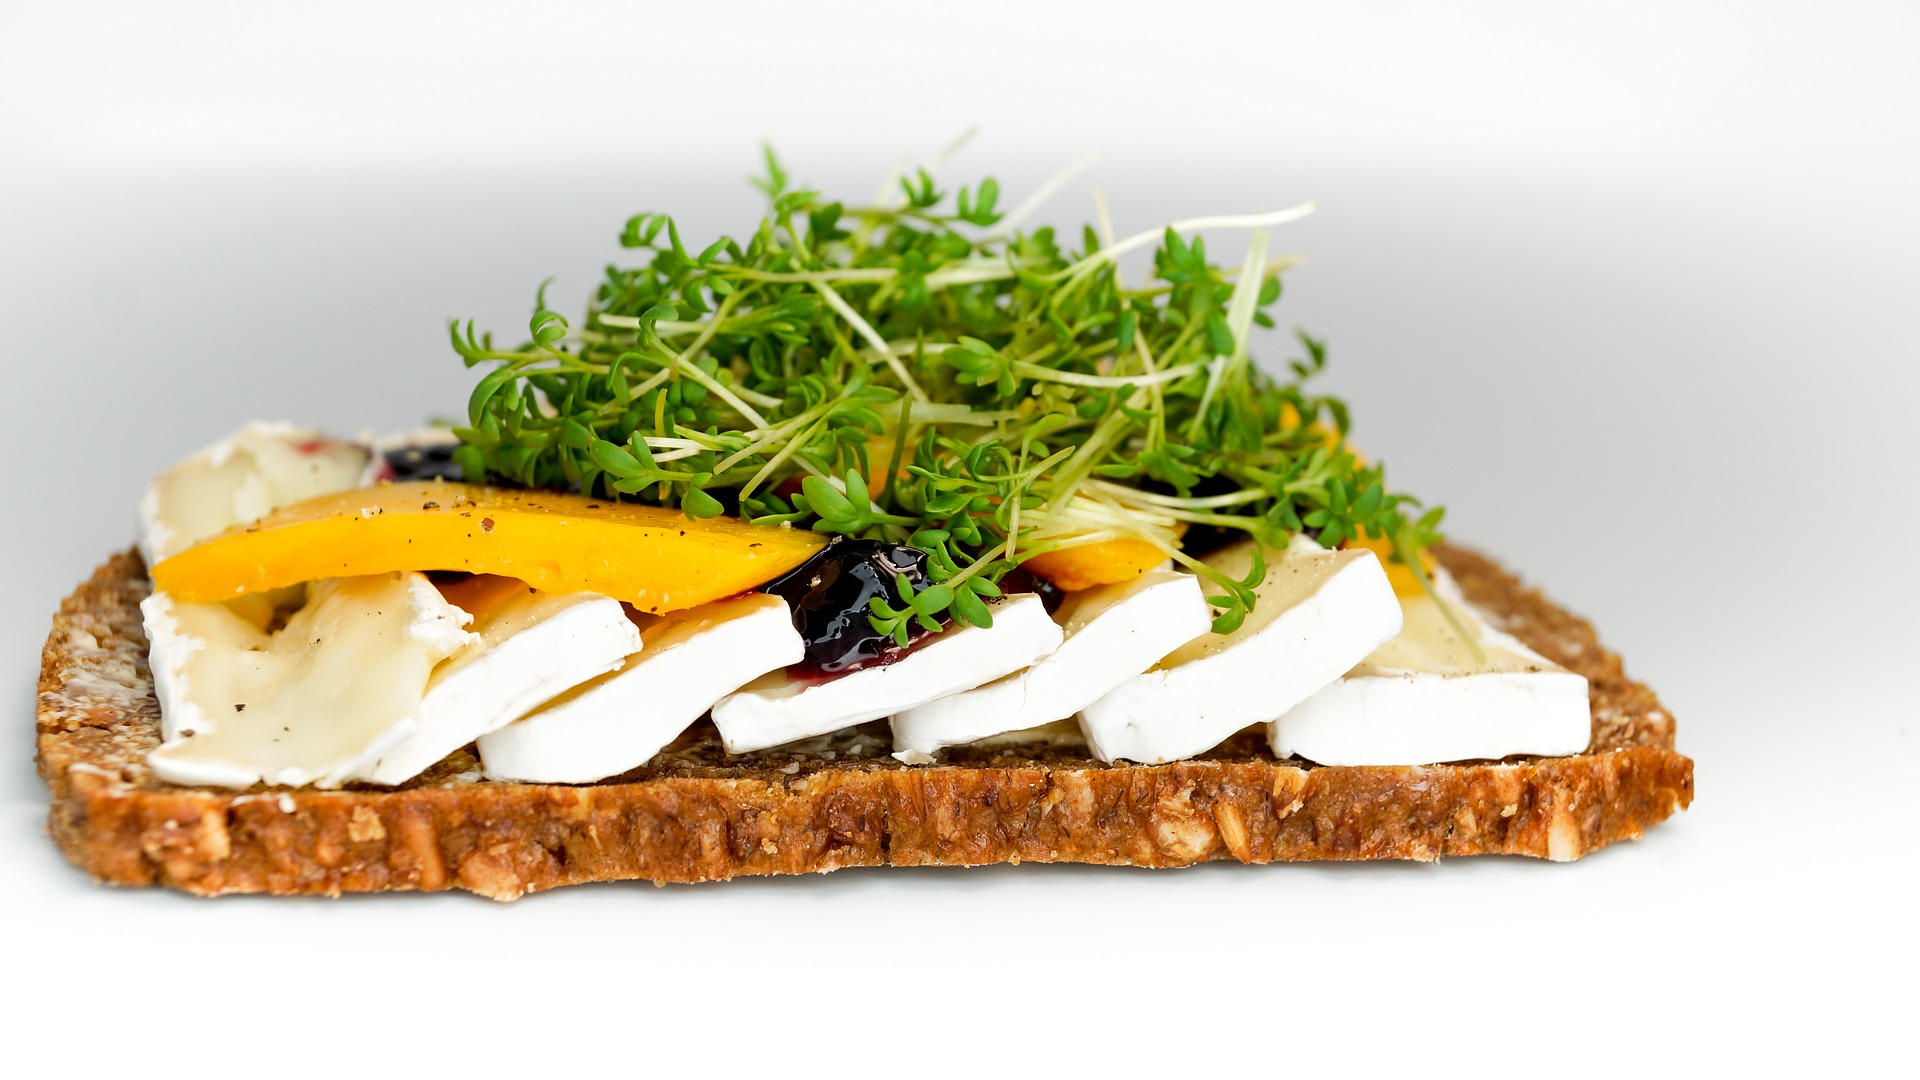 Whole grain bread with cheese and watercress.